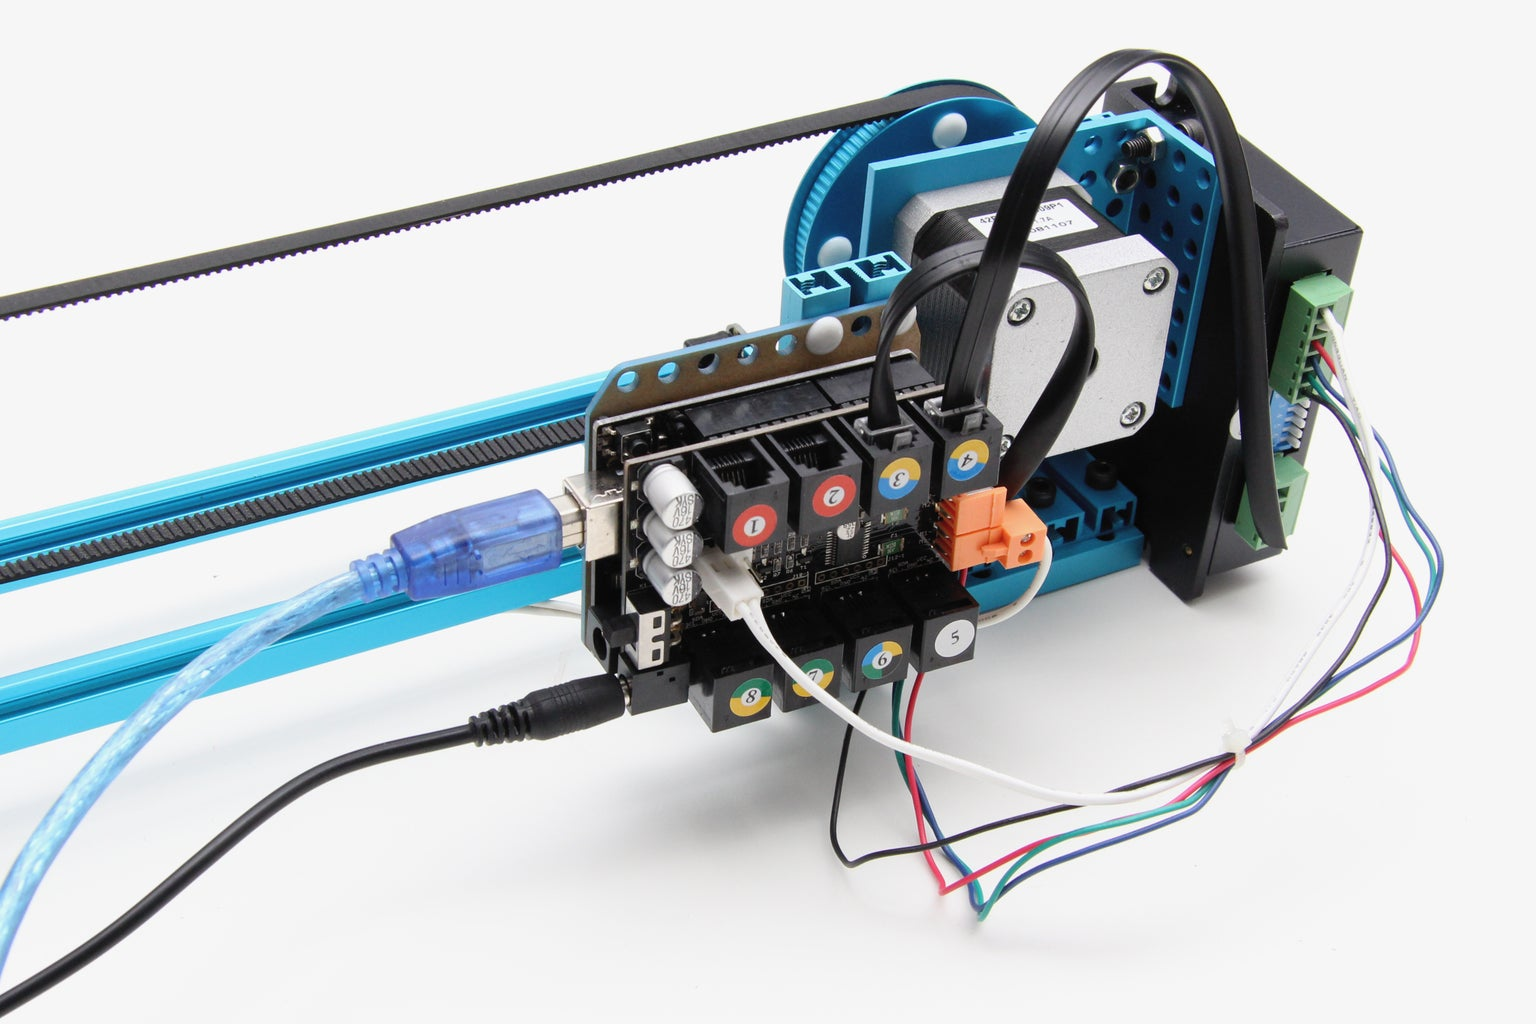 Upload the Arduino Code and Play the Music